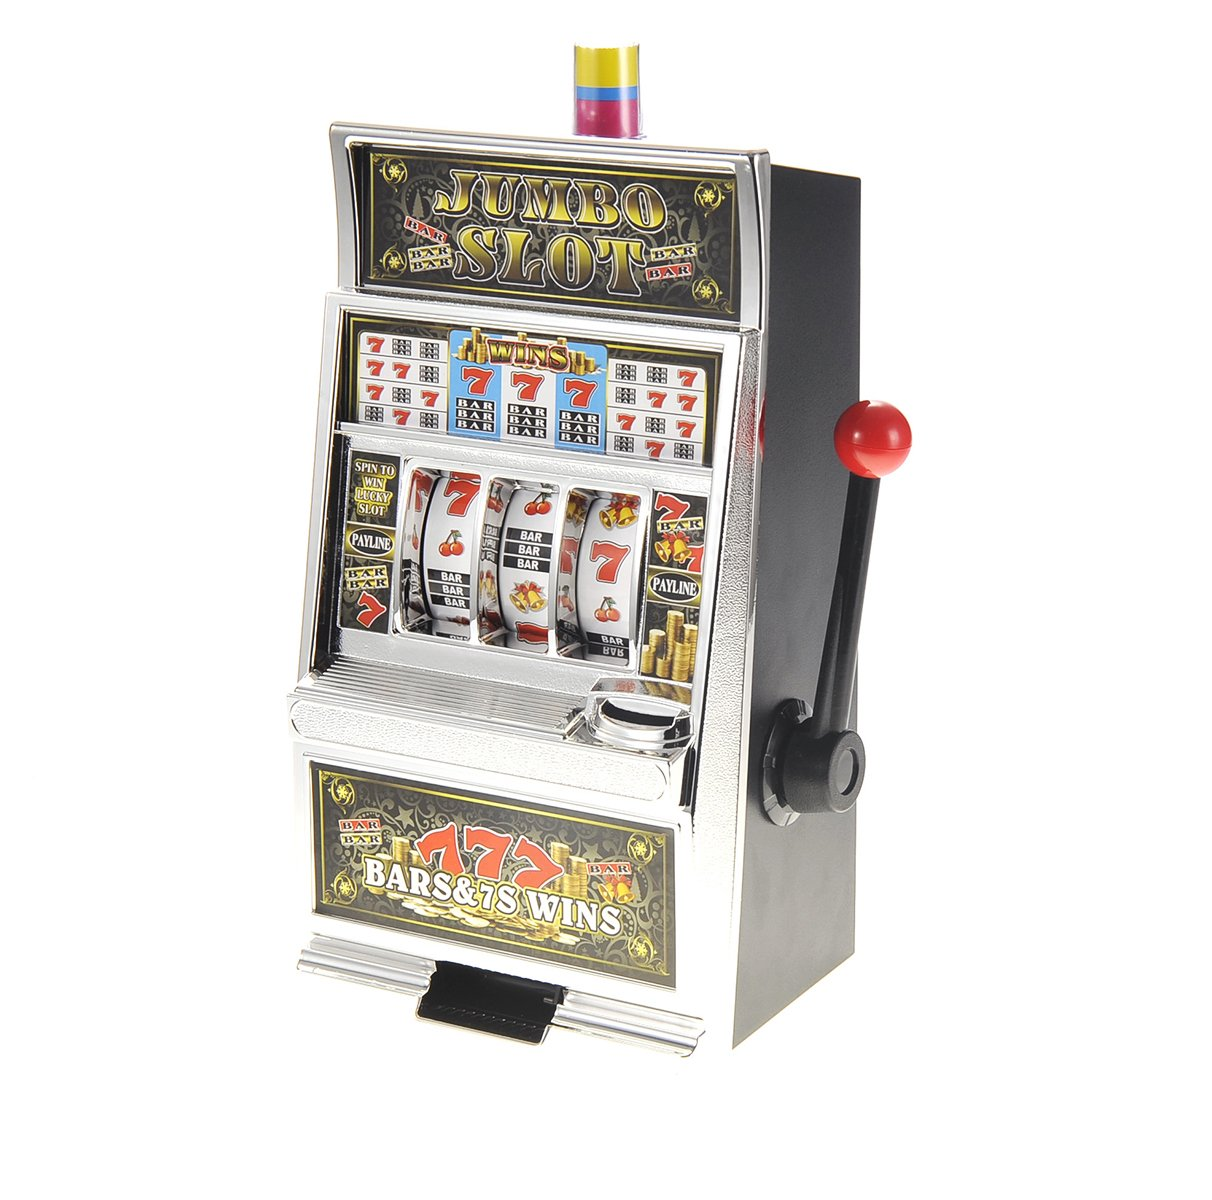 AMPERSAND SHOPS Lucky 7 Casino Slot Machine Replica 15'' x 9'' Coin Bank by AMPERSAND SHOPS (Image #1)